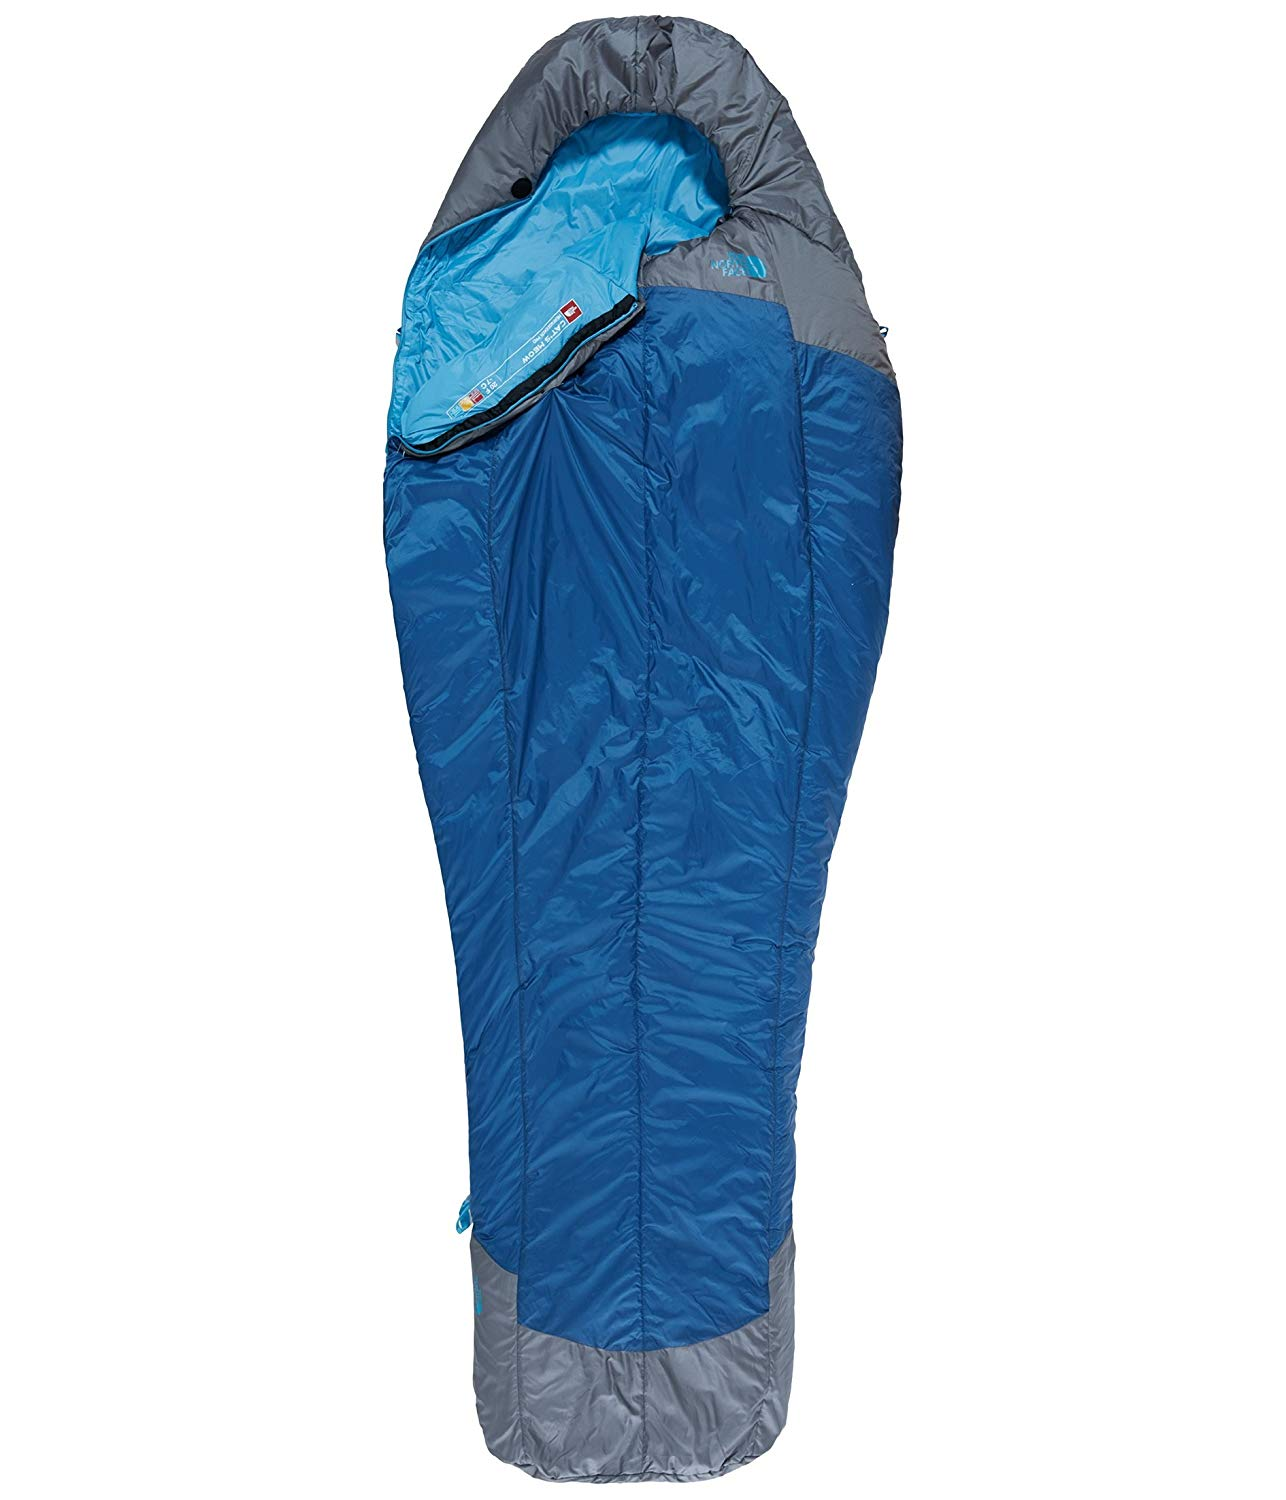 The North Face Cat's Meow backpacking sleeping bag